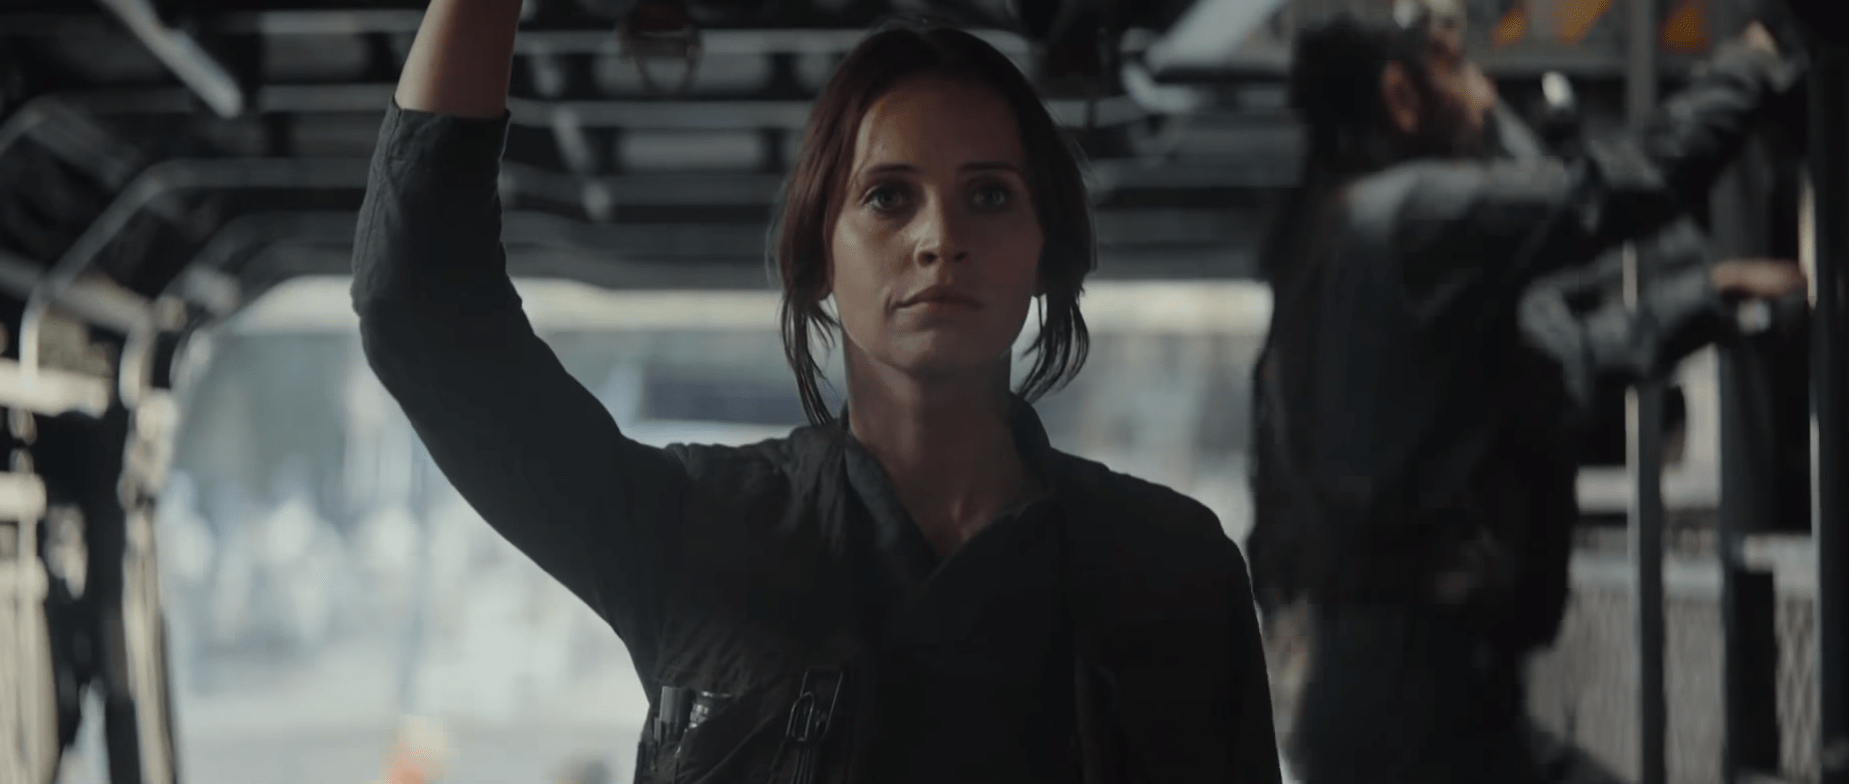 Felicity Jones plays Jyn Erso in Rogue One (Picture: Lucasfilm)